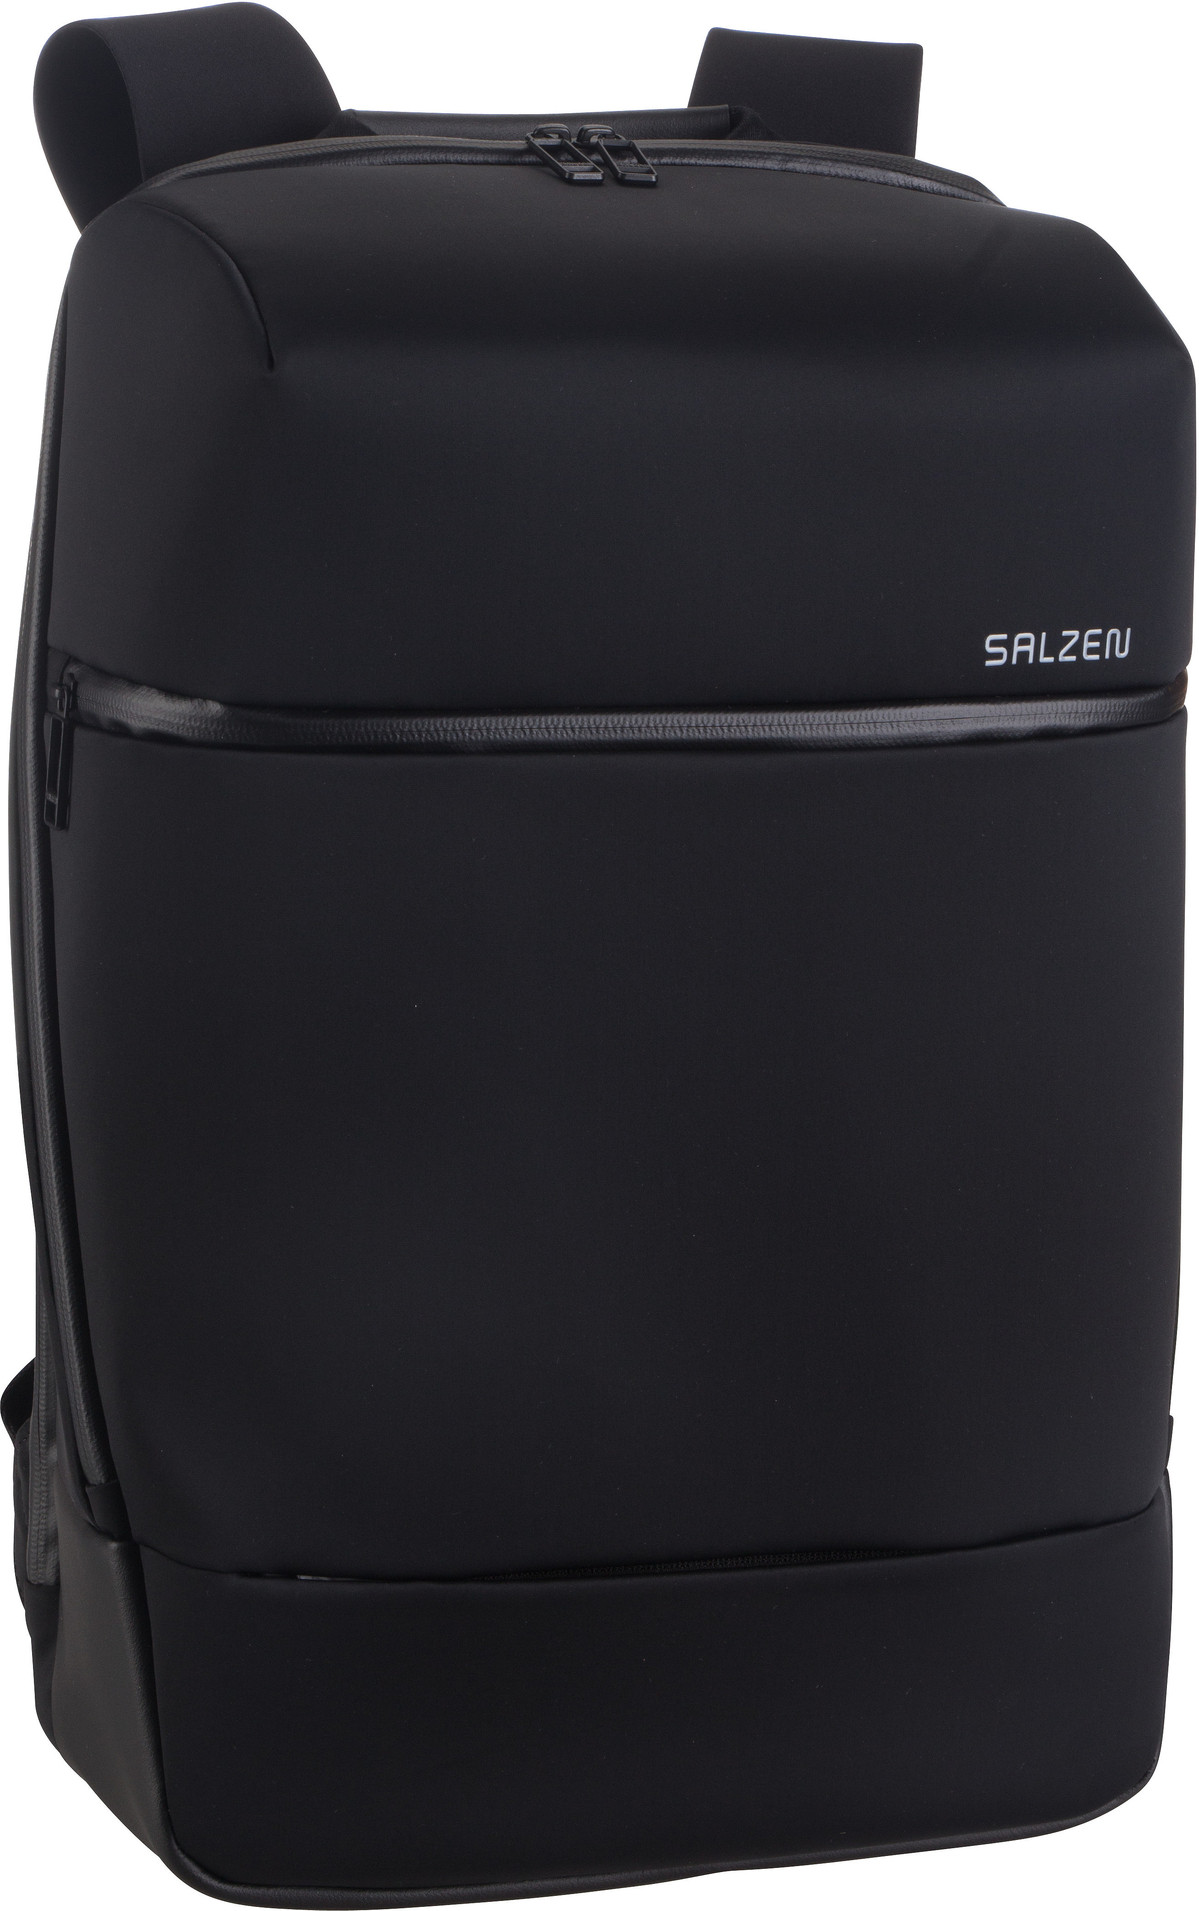 Laptoprucksack Sharp Fabric Phantom Black (20 Liter)